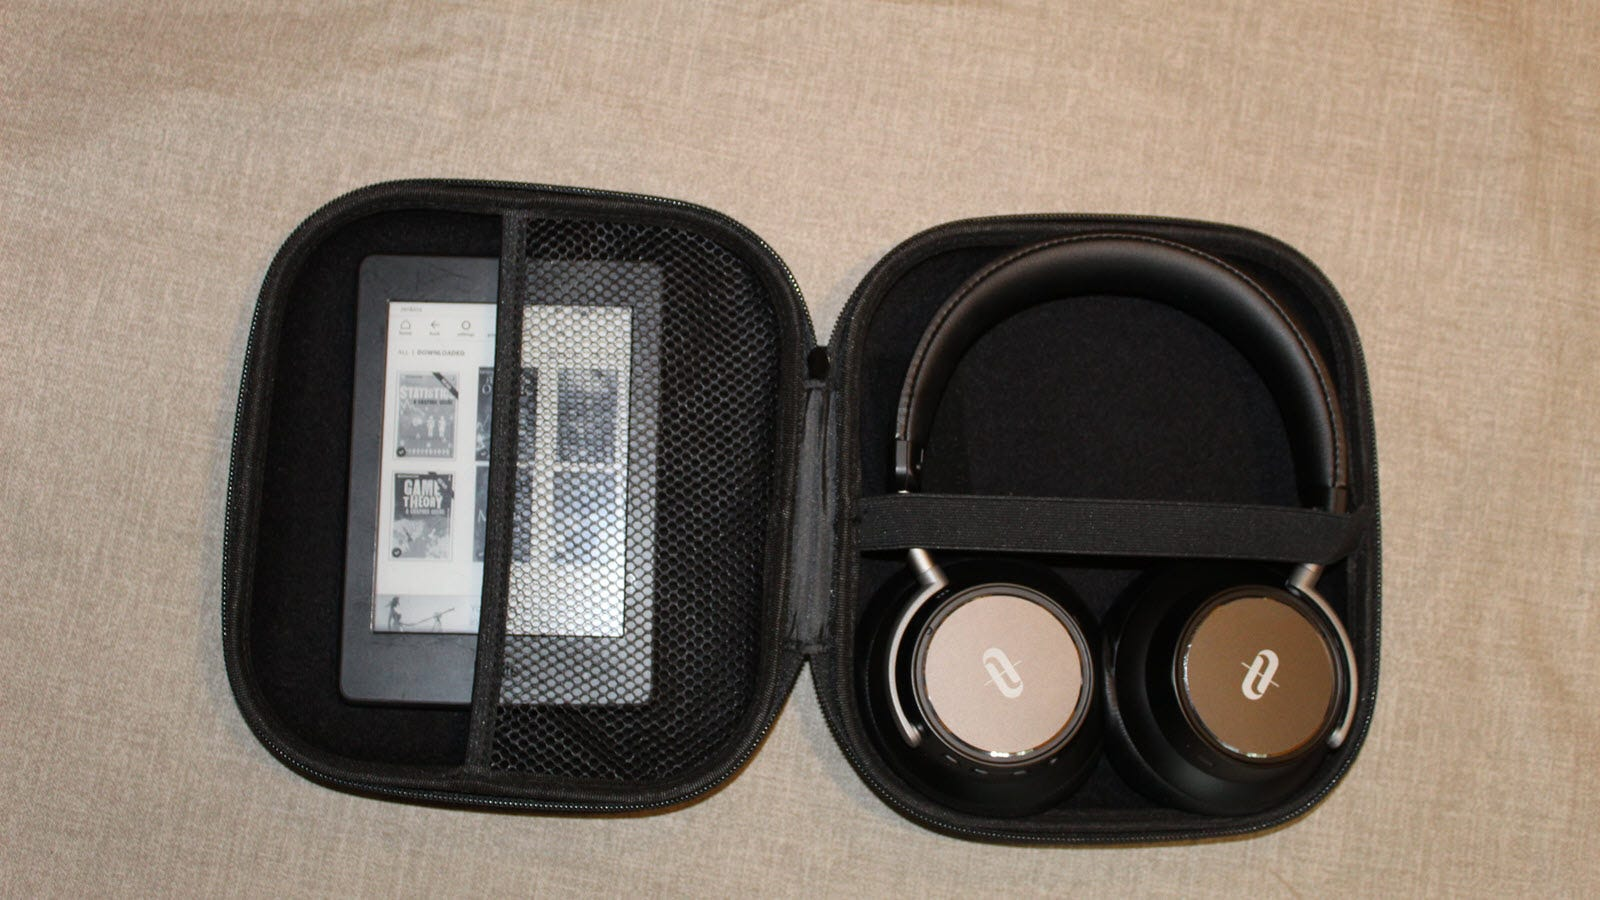 The Taotronics headphones in the case, and a kindle fits with room to spare.